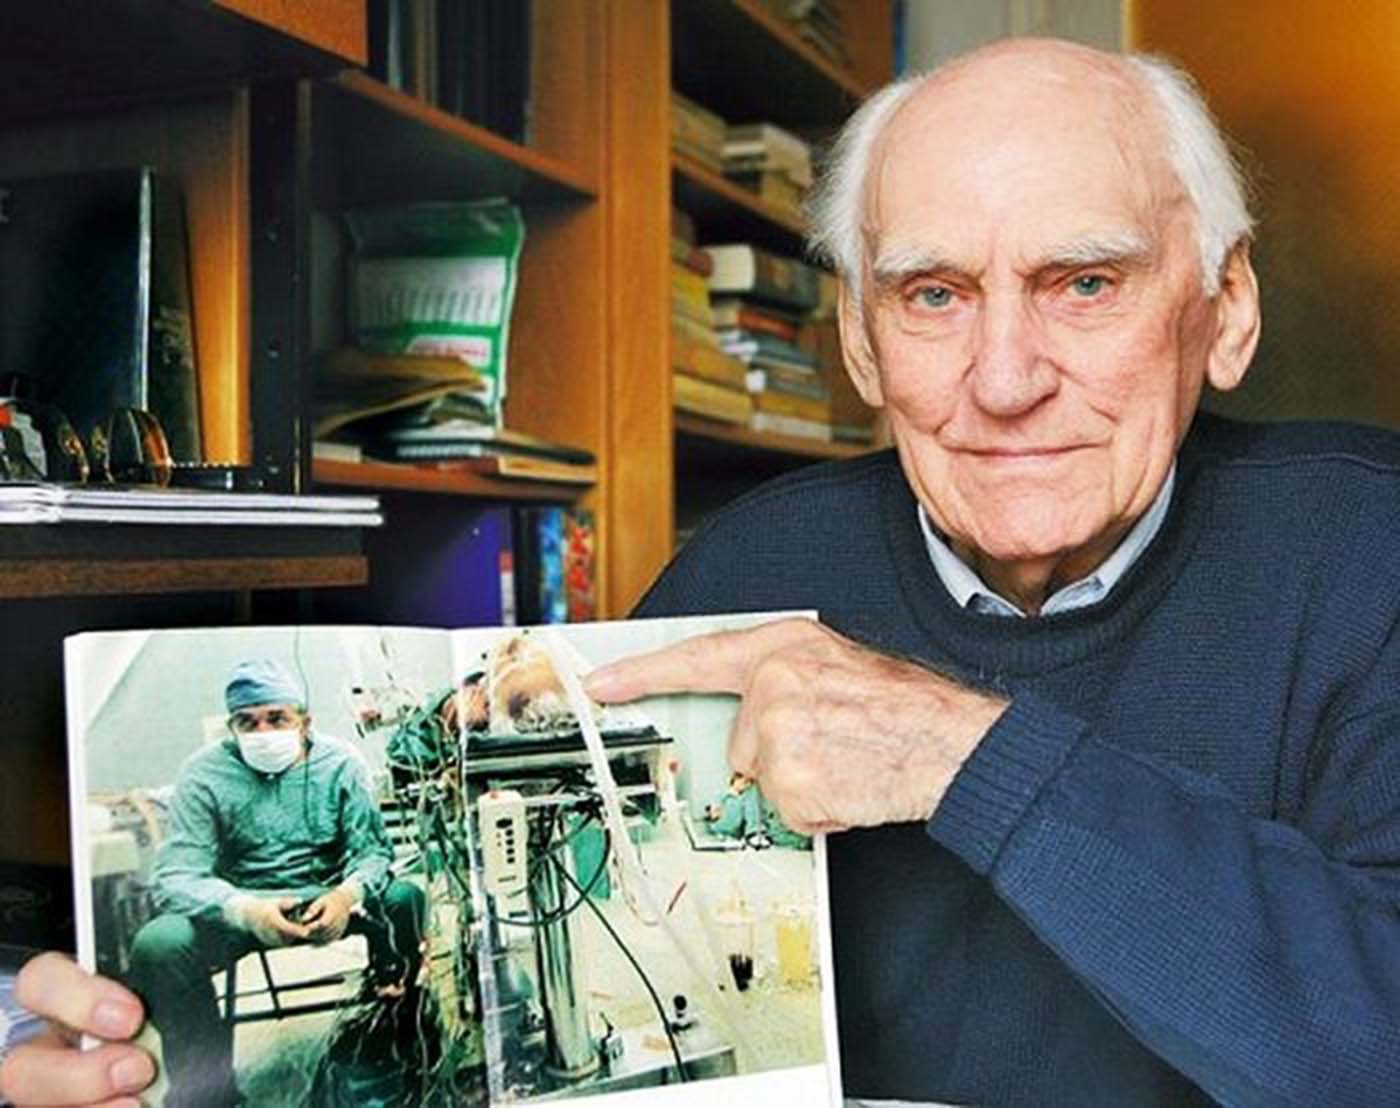 Religia's patient, Tadeusz Żytkiewicz, not only survived, but outlived his doctor.